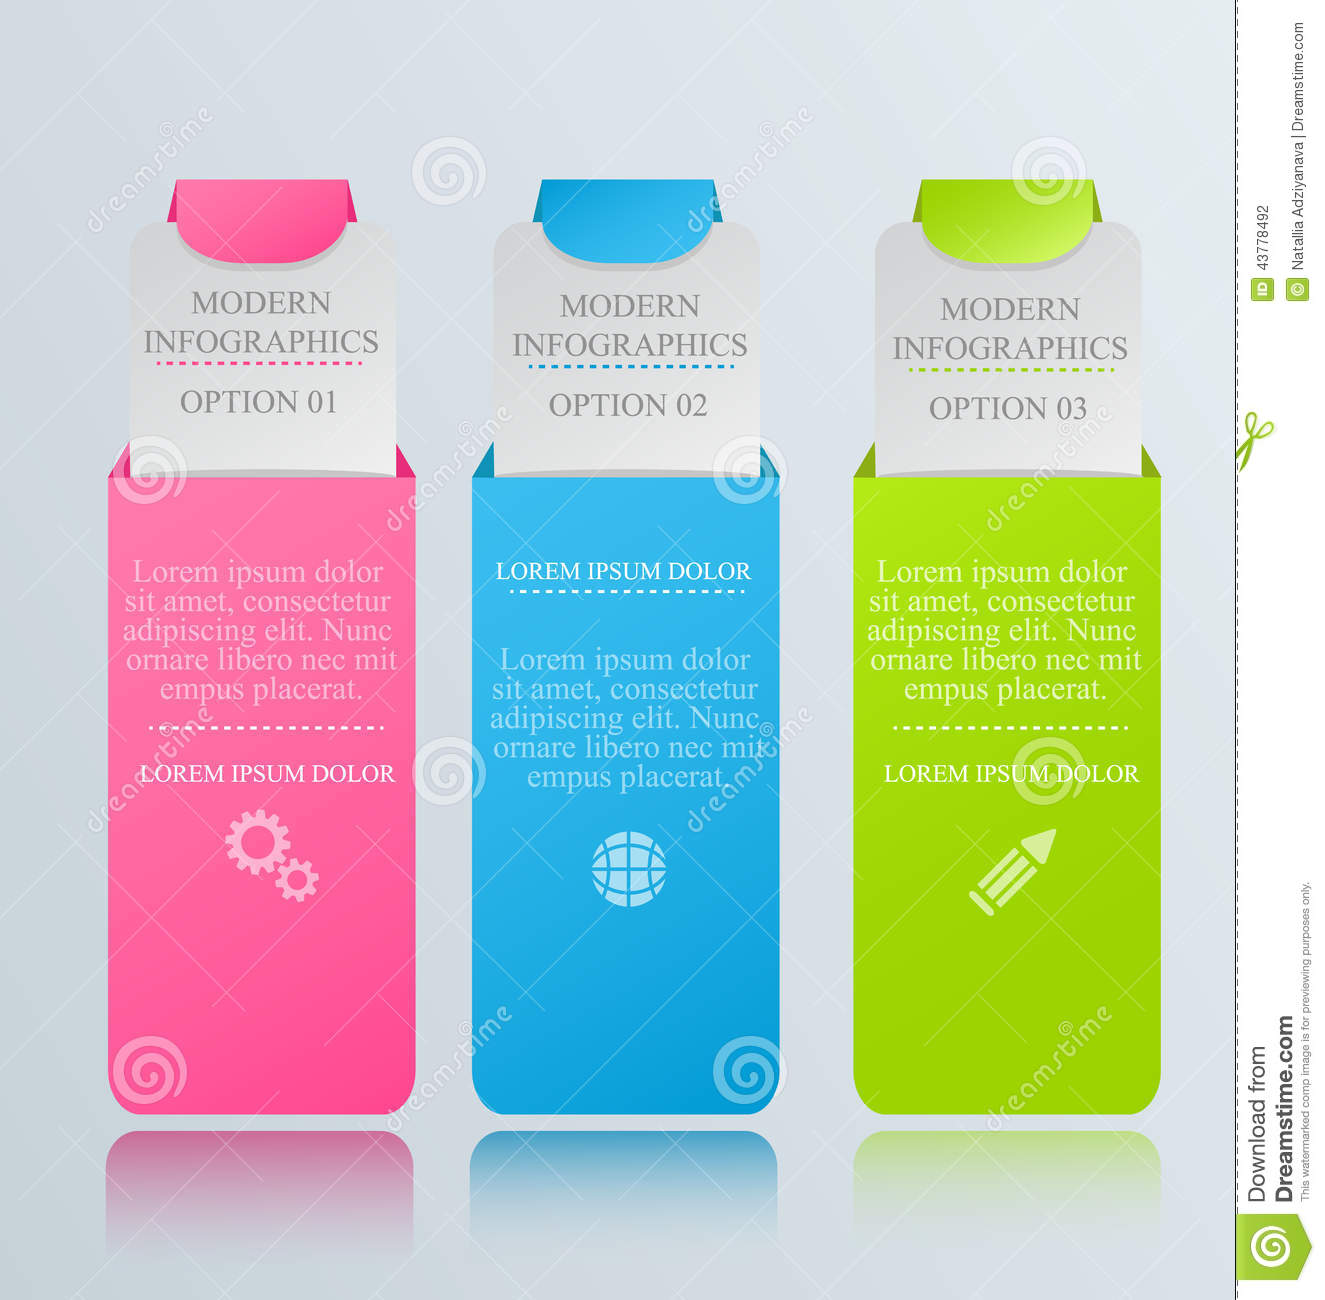 modern inforgraphic template can be used for banners website modern inforgraphic template can be used for banners website templates and designs infographic